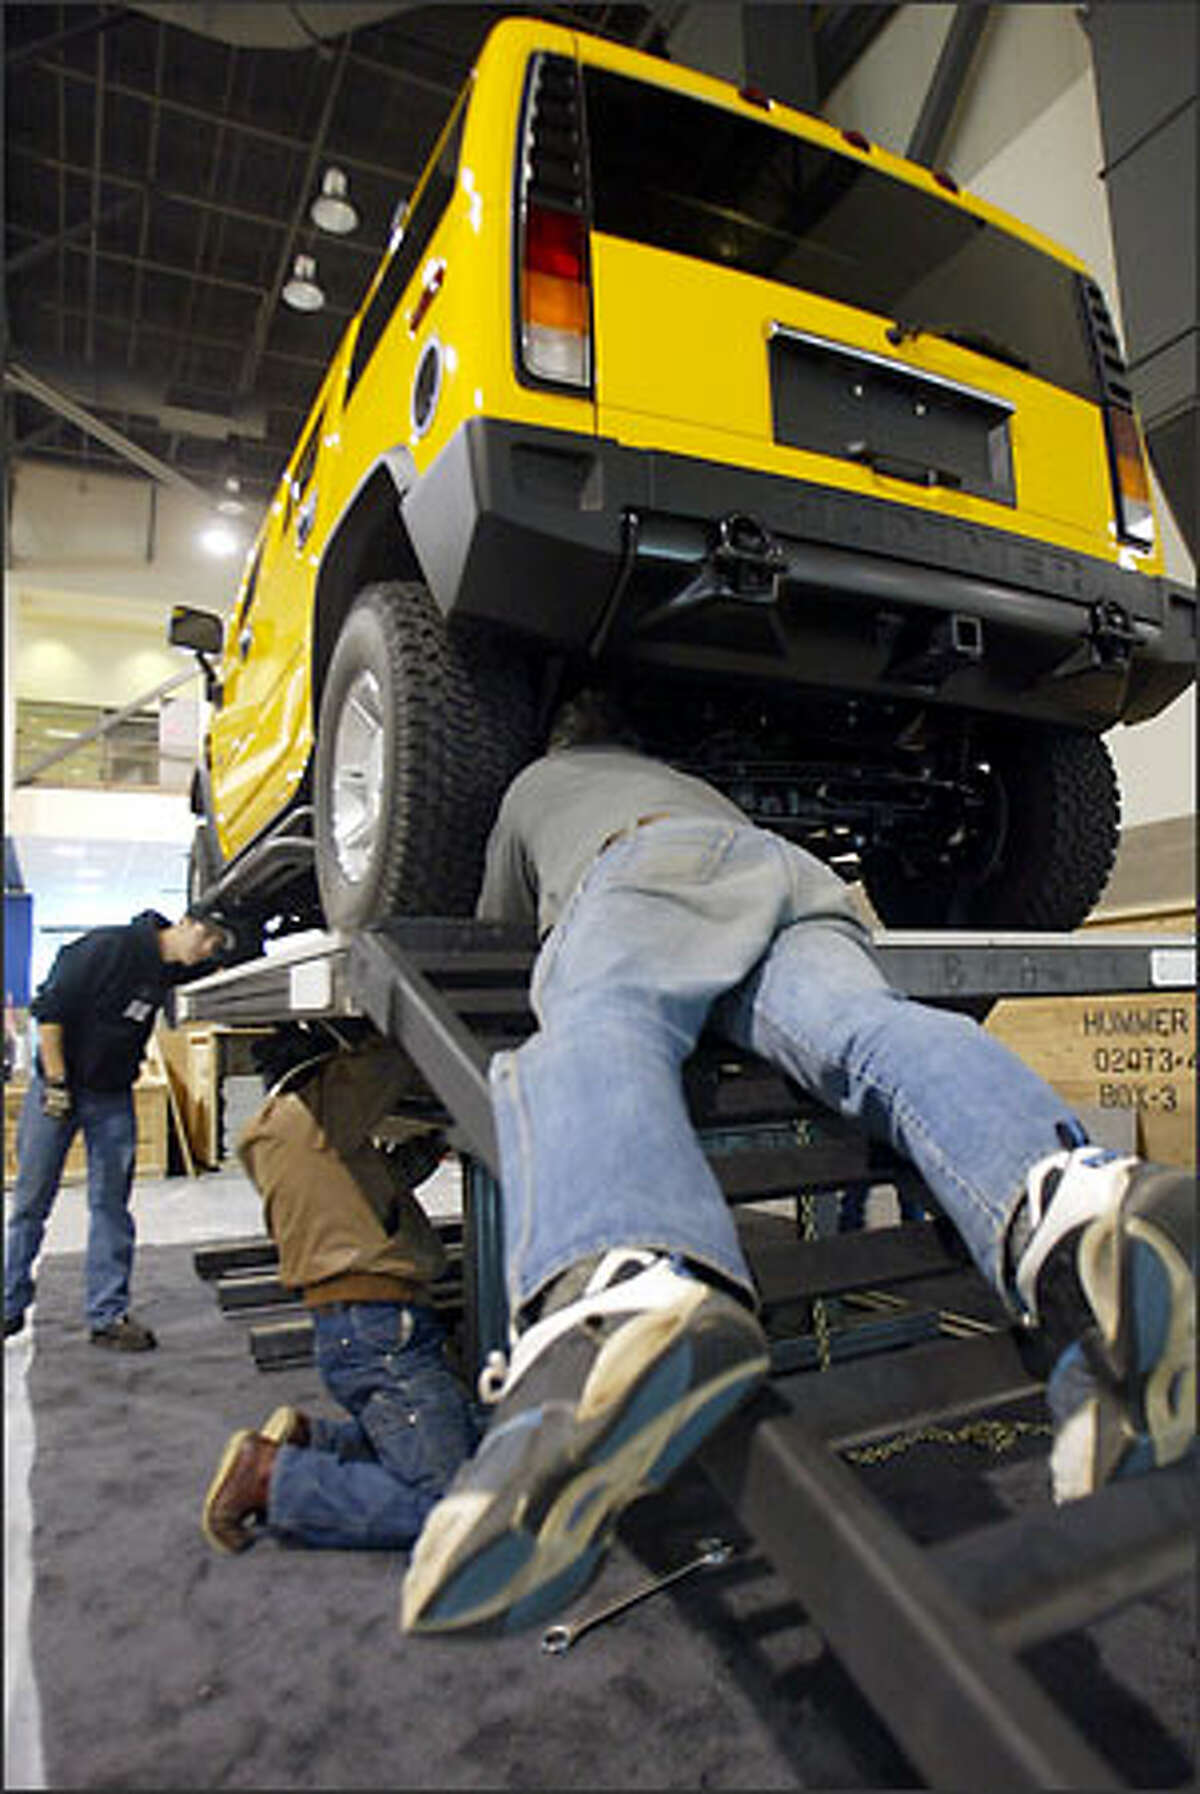 The Hummer H2 is just one of the new 2004 models that will be on display during the Seattle International Auto Show, which began Wednesday, Nov. 12. Hummer does not provide specific gas mileage for the H2, shown on a display mount, but its previous version got about eight to 14 miles per gallon. The 2004 model costs $57,650.